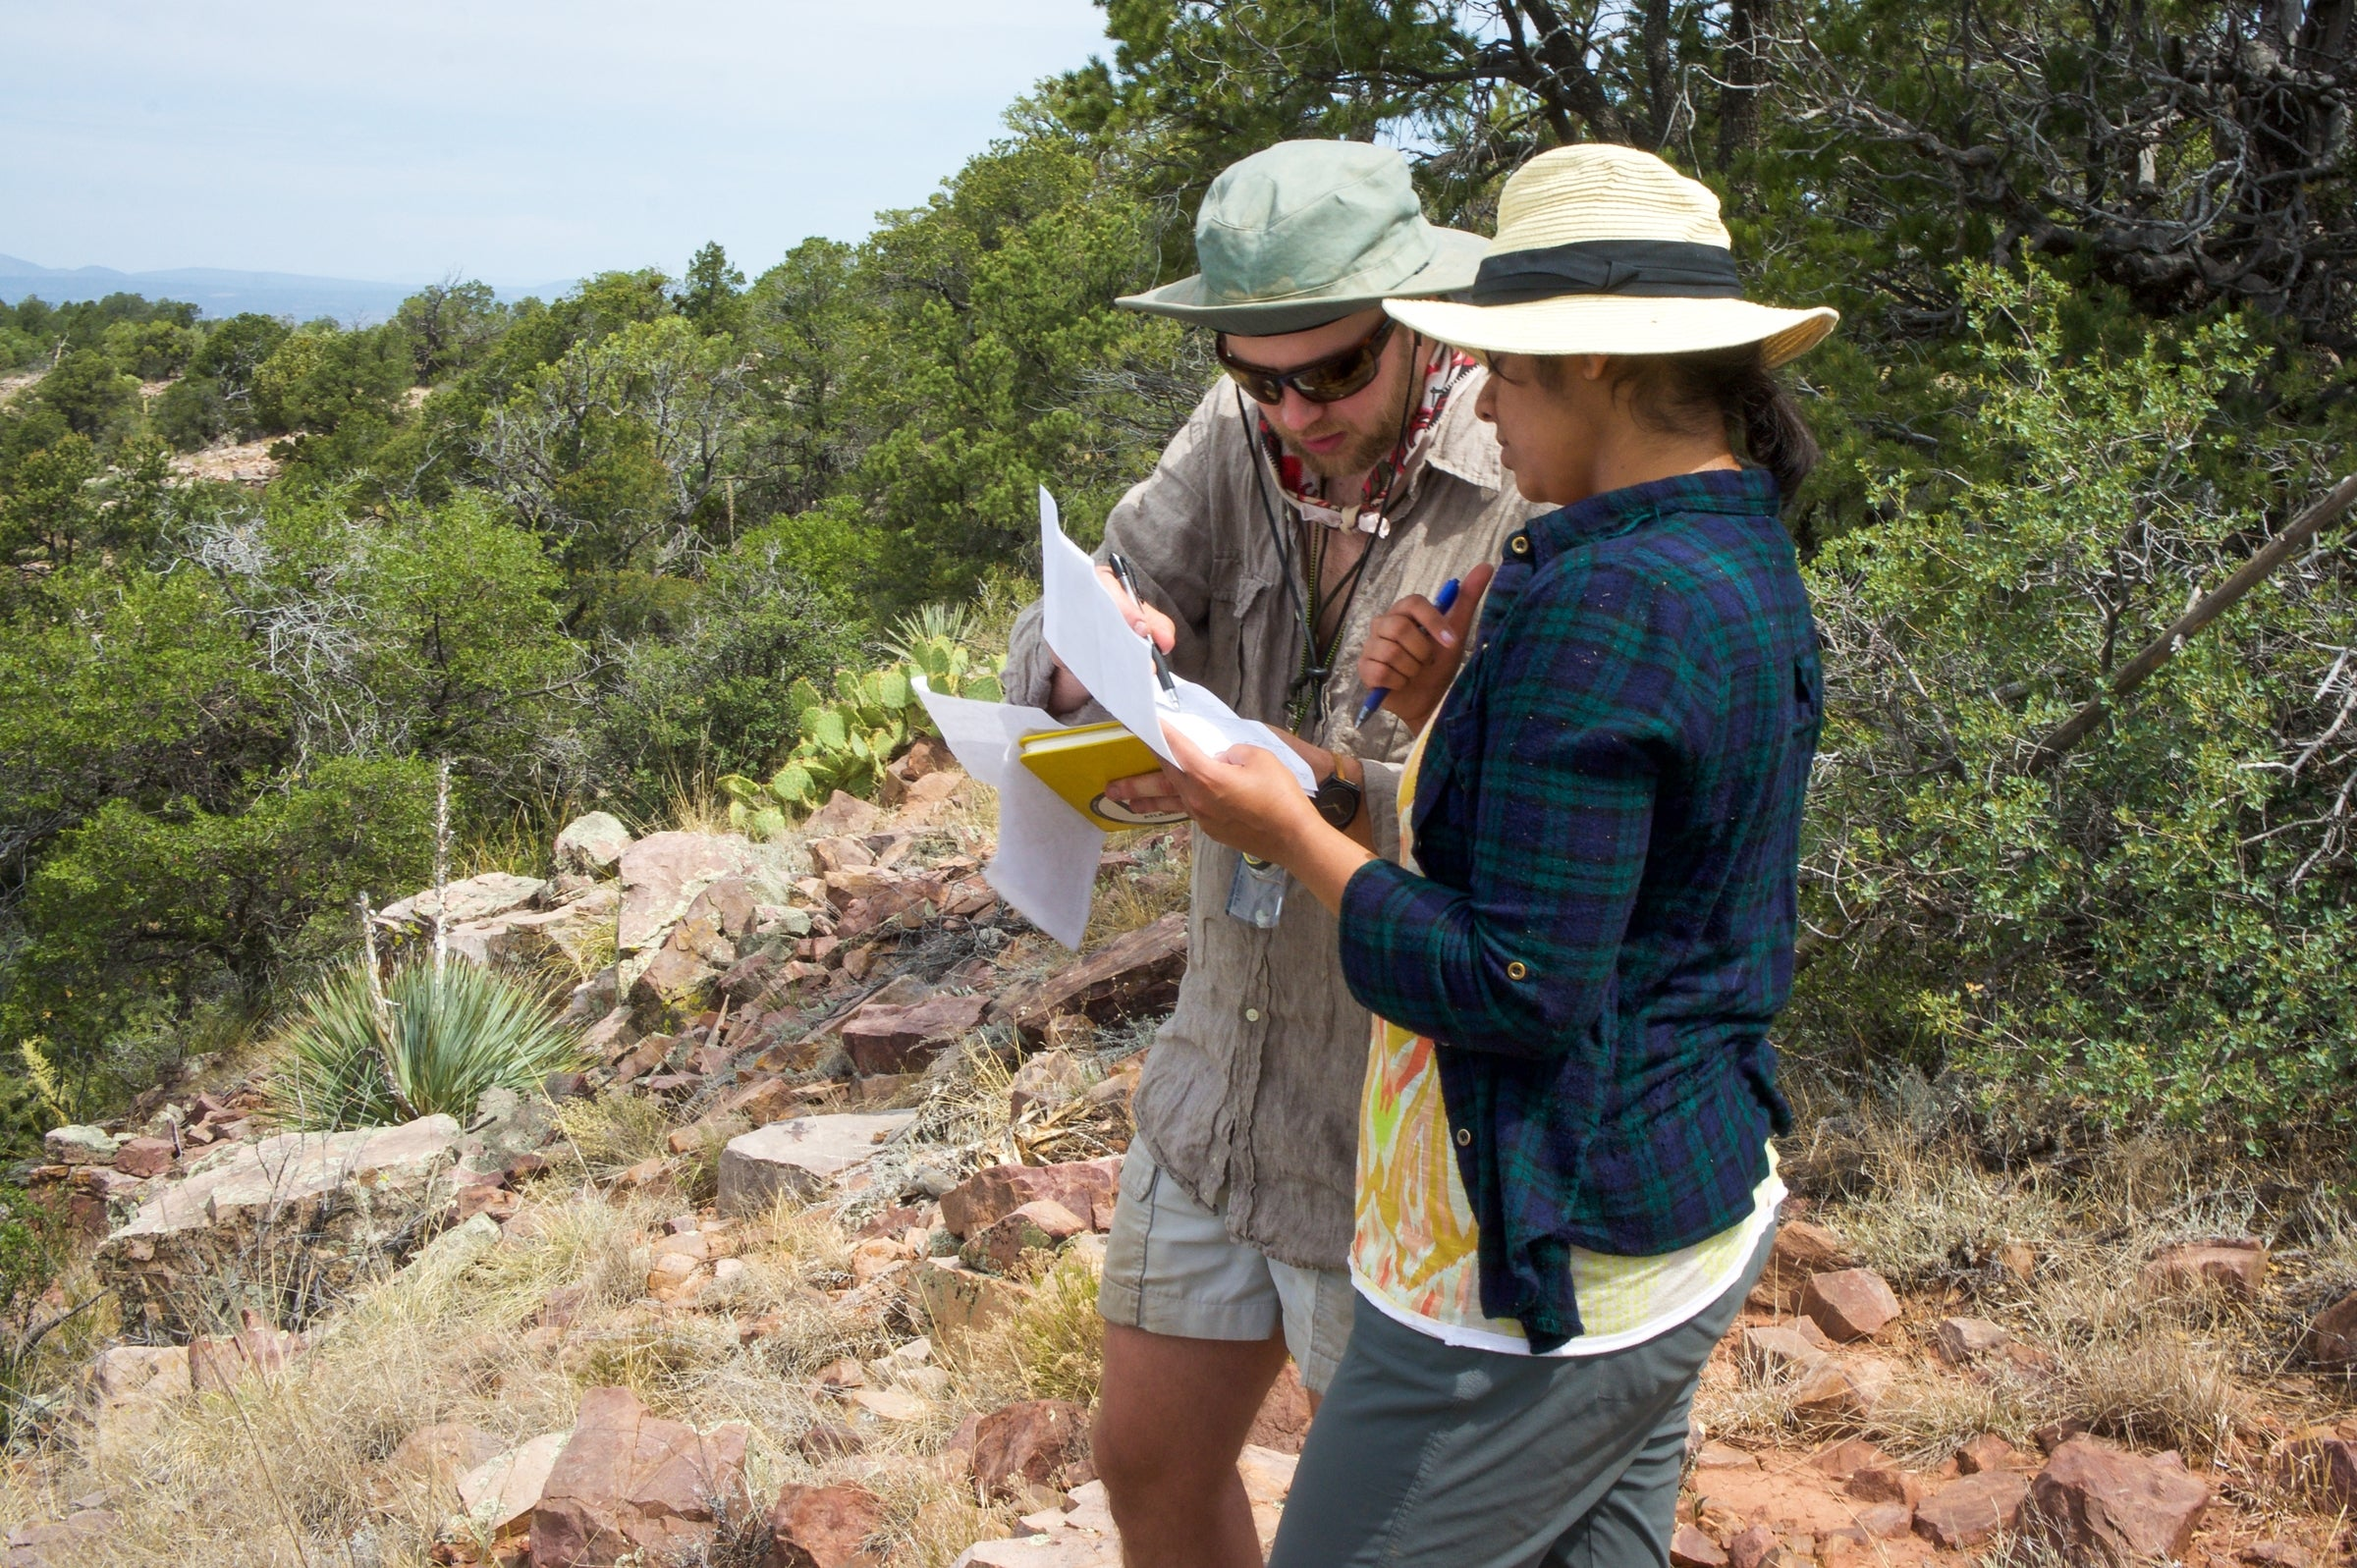 ASU graduate students consult coordinates to track a meteorite.